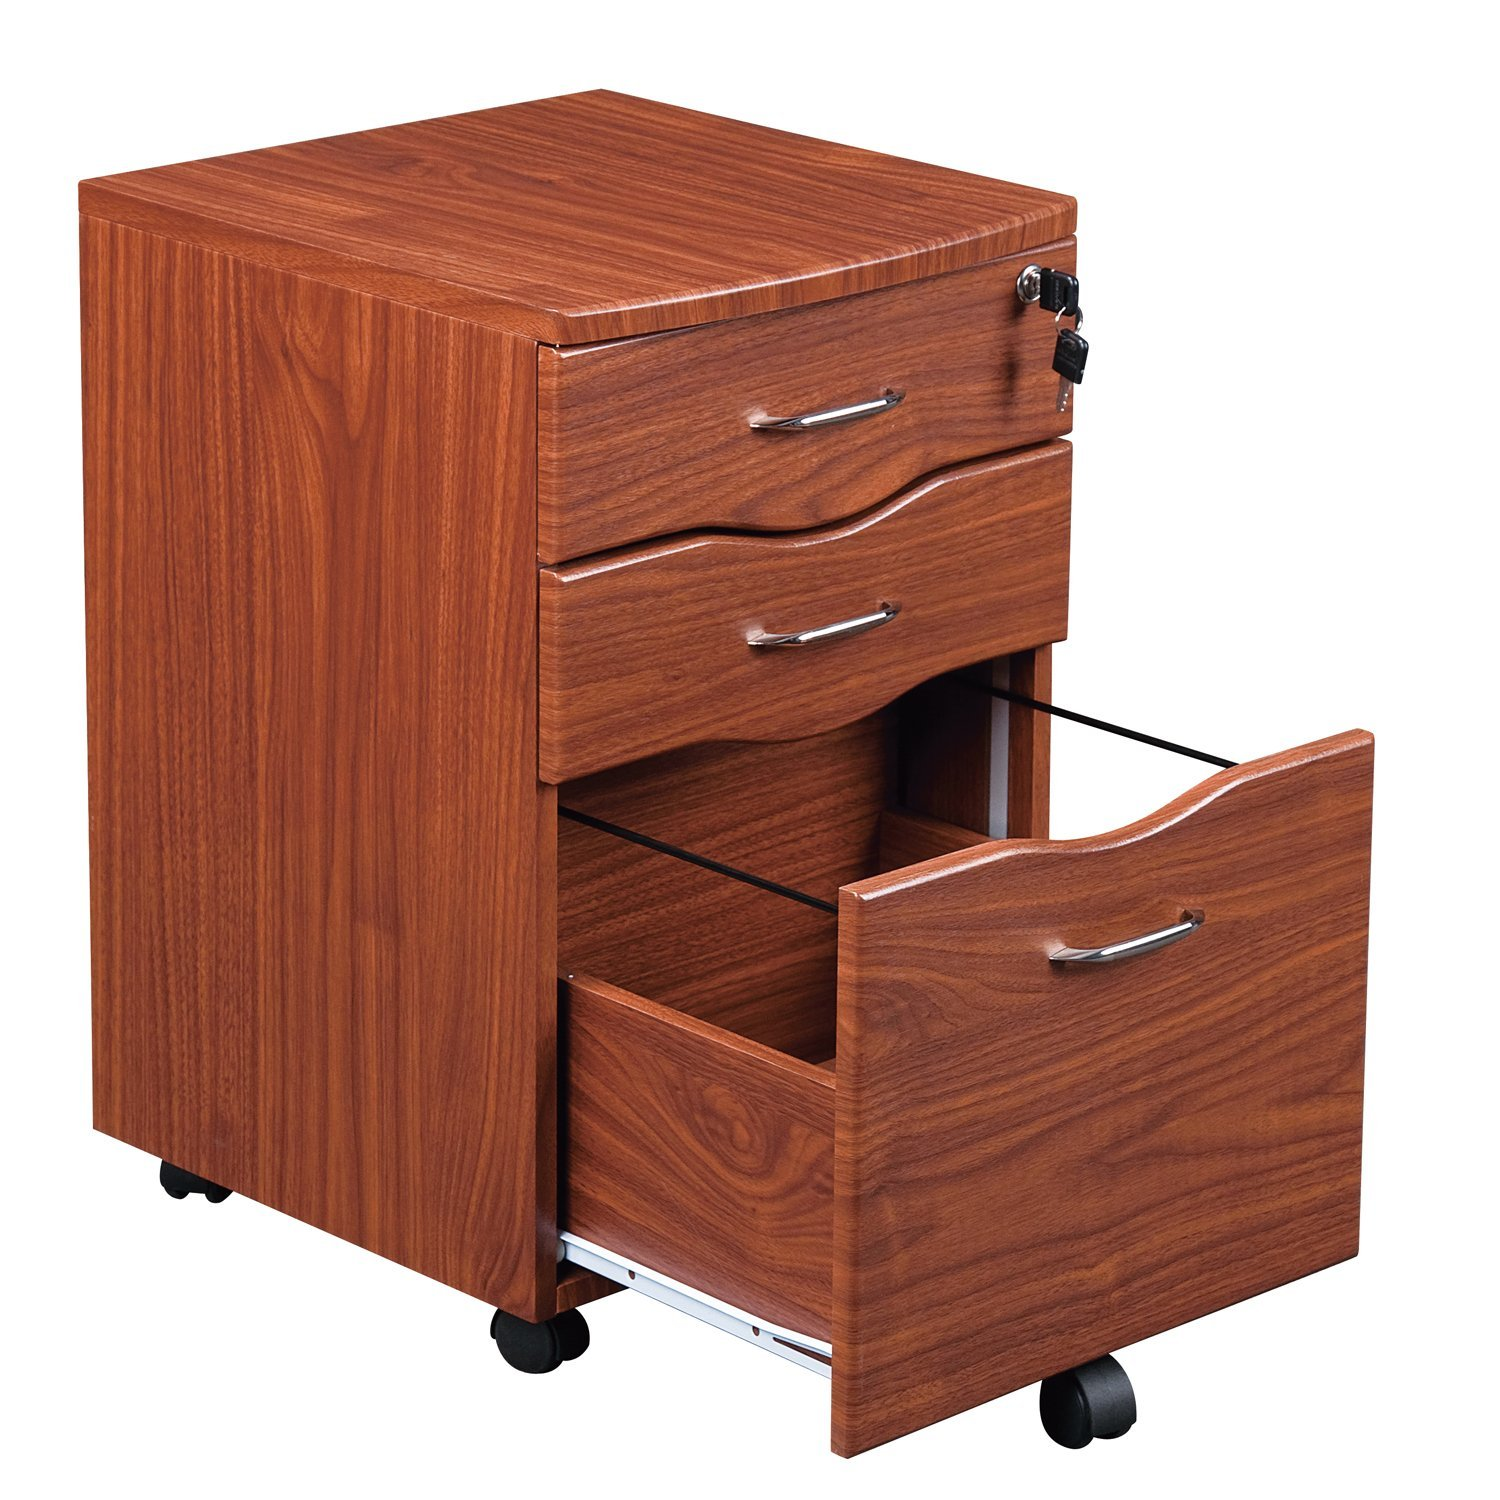 wheels storage double drawer size vertical oak locking white target office lateral with two lock and solid dark me of cabinet wood home cabinets drawers near metal full file